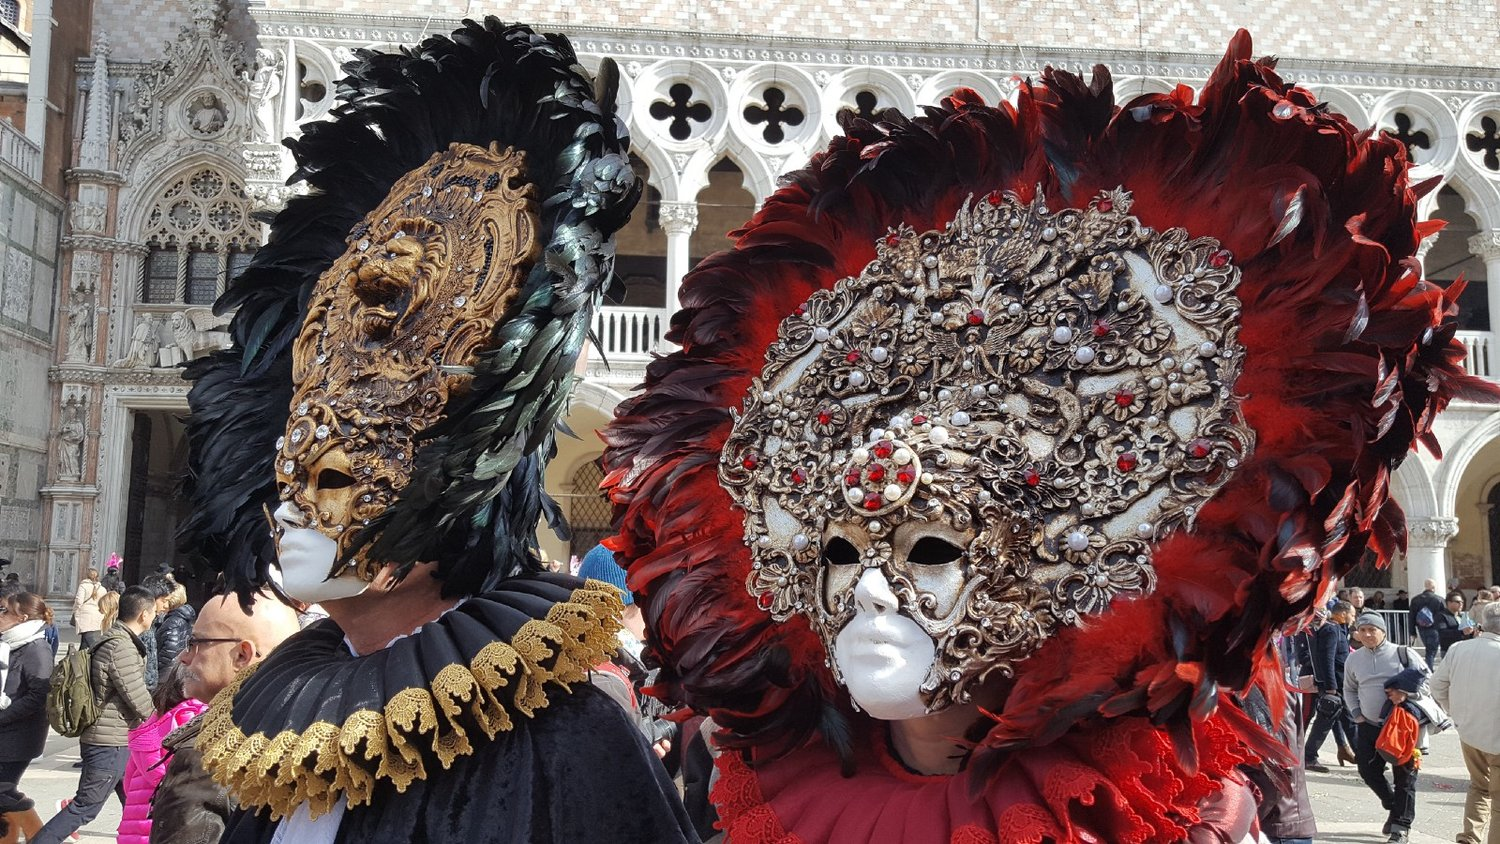 Beautiful masks in one of the famous squares of Venice. Credit: I'm|Possible, during our last incentive tours in Venice.